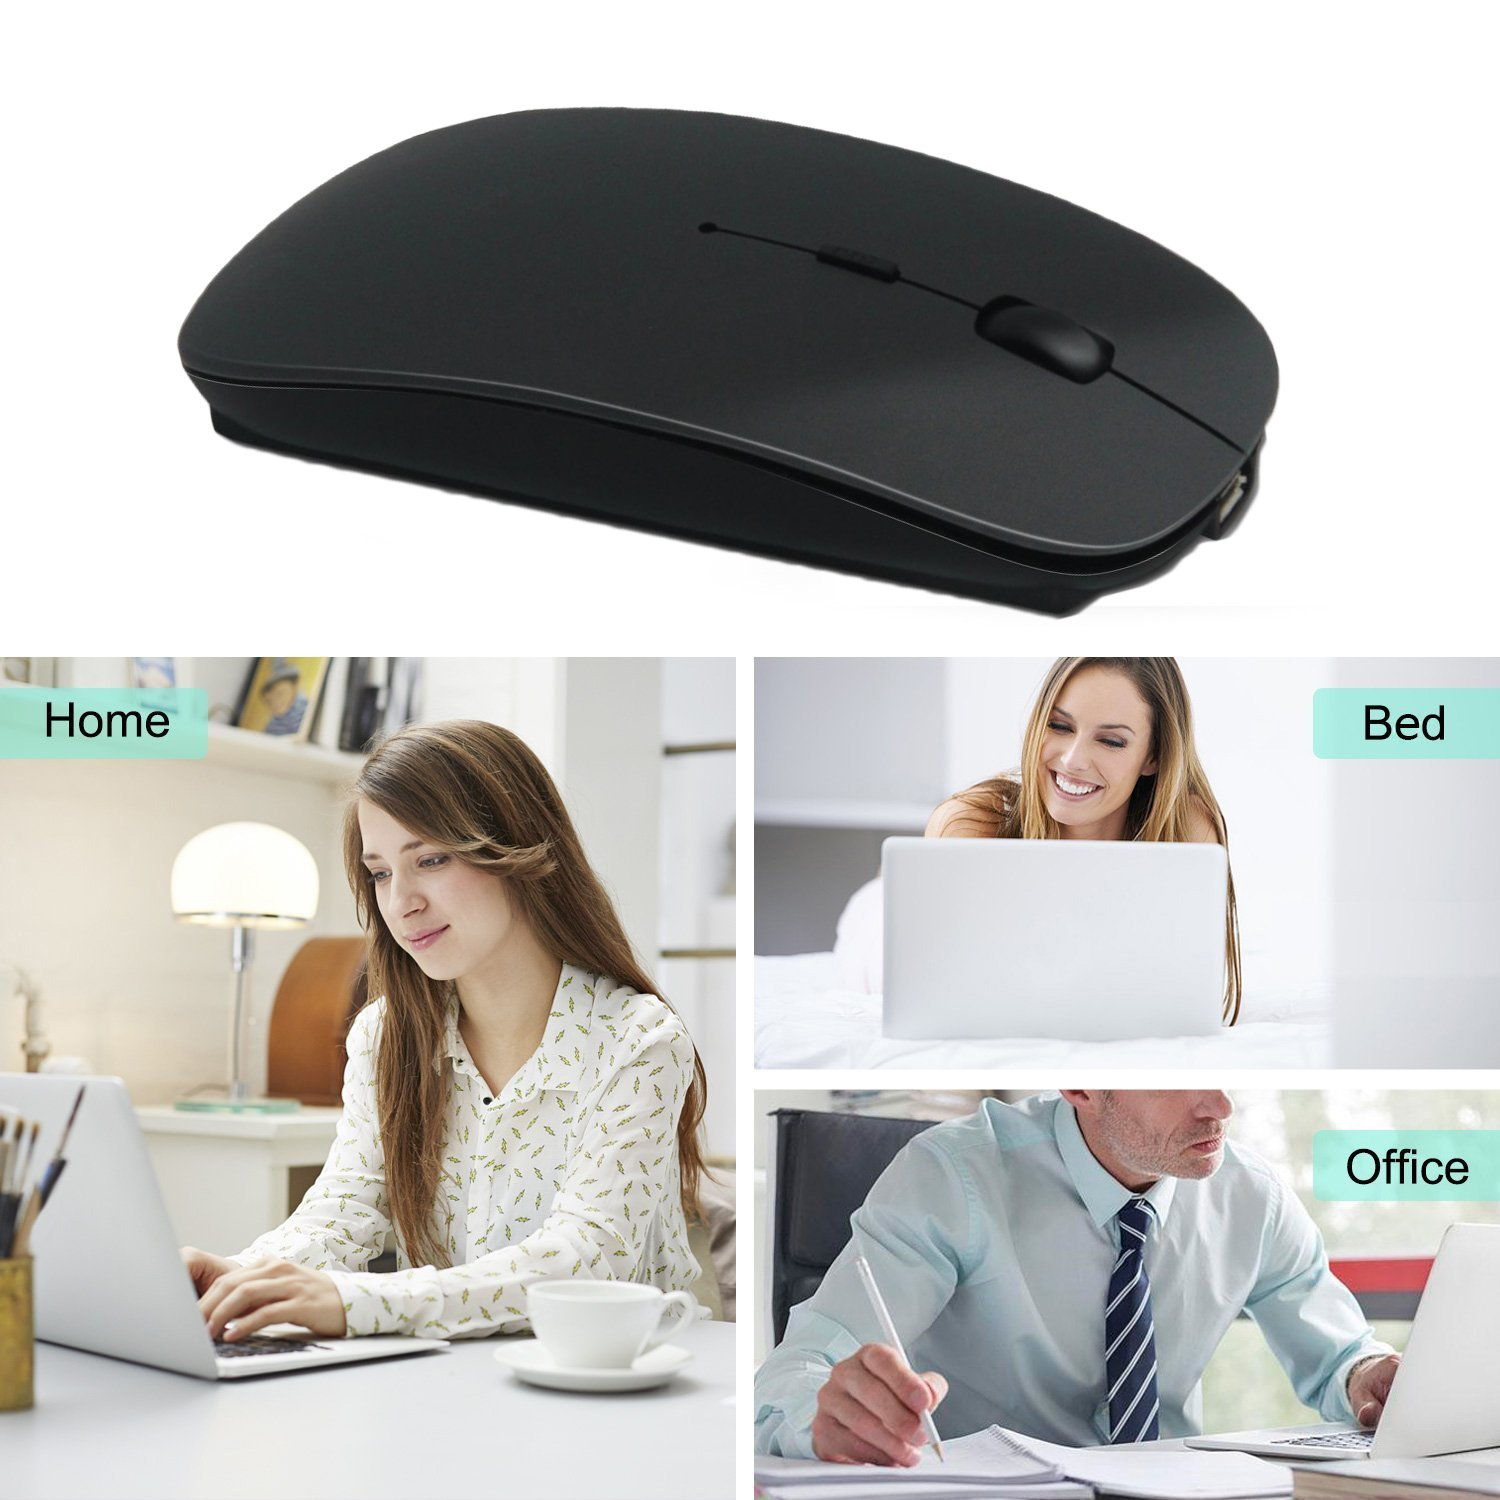 Wireless Mouse,BOOMER VIVI Rechargeable Portable Bluetooth 3.0 Slim Mice 3 Level Adjustable DPI Power-saving Model Built-in Battery with USB cable for PC Laptop Windows/Android Tablet,Mac by BOOMER VIVI (Image #9)